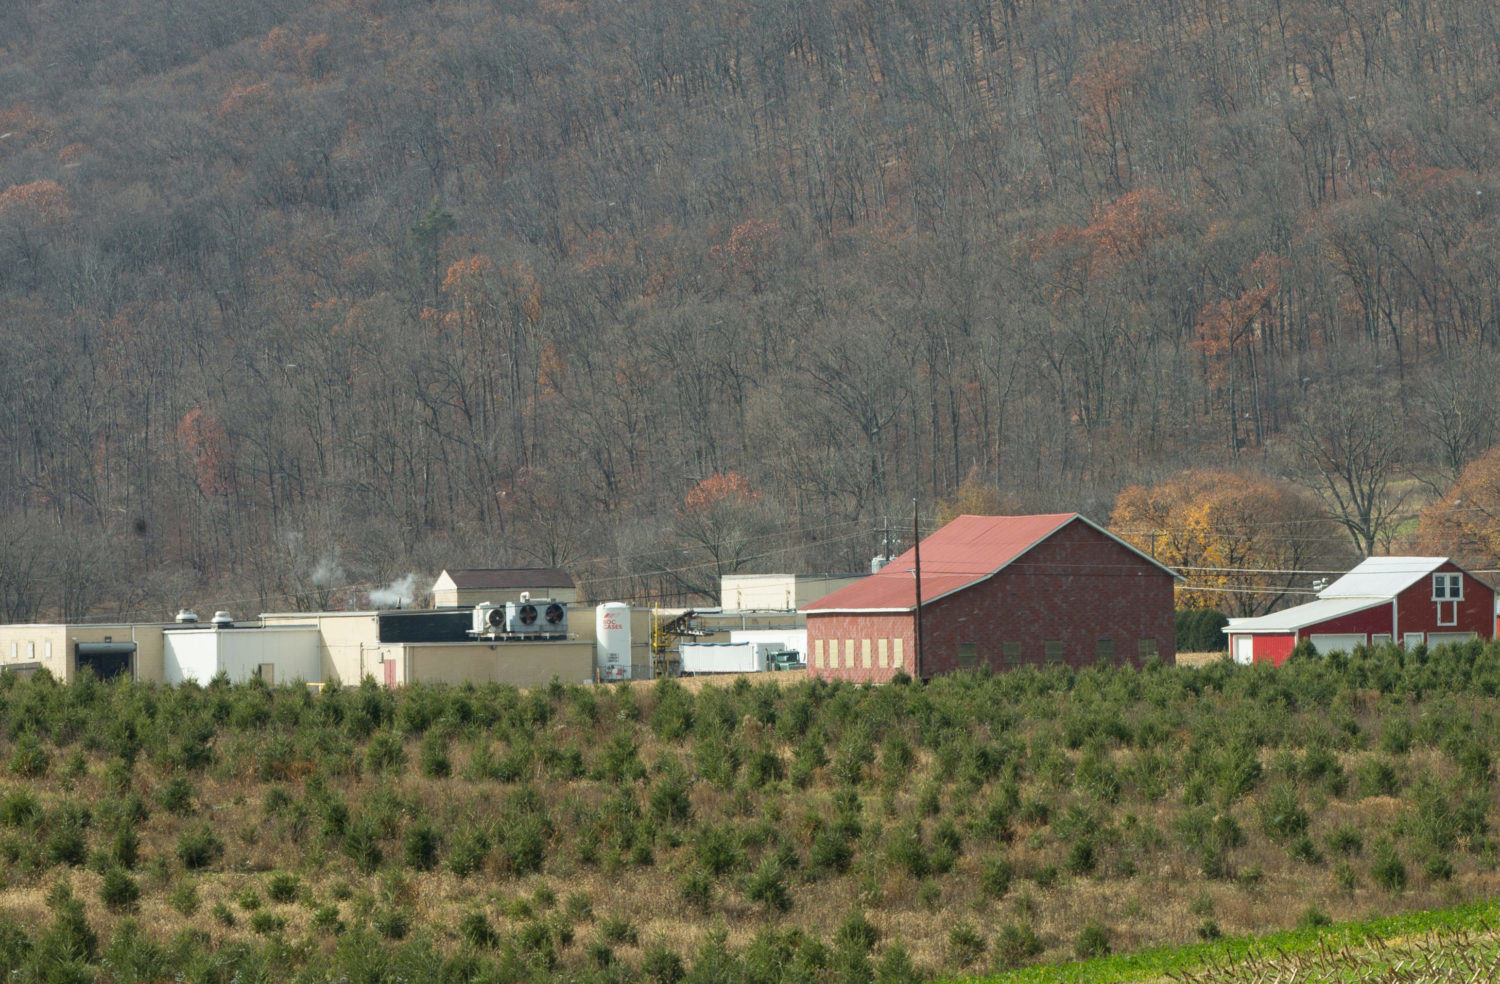 Koch's Turkey Farm, Tamaqua, PA: 62.4 miles